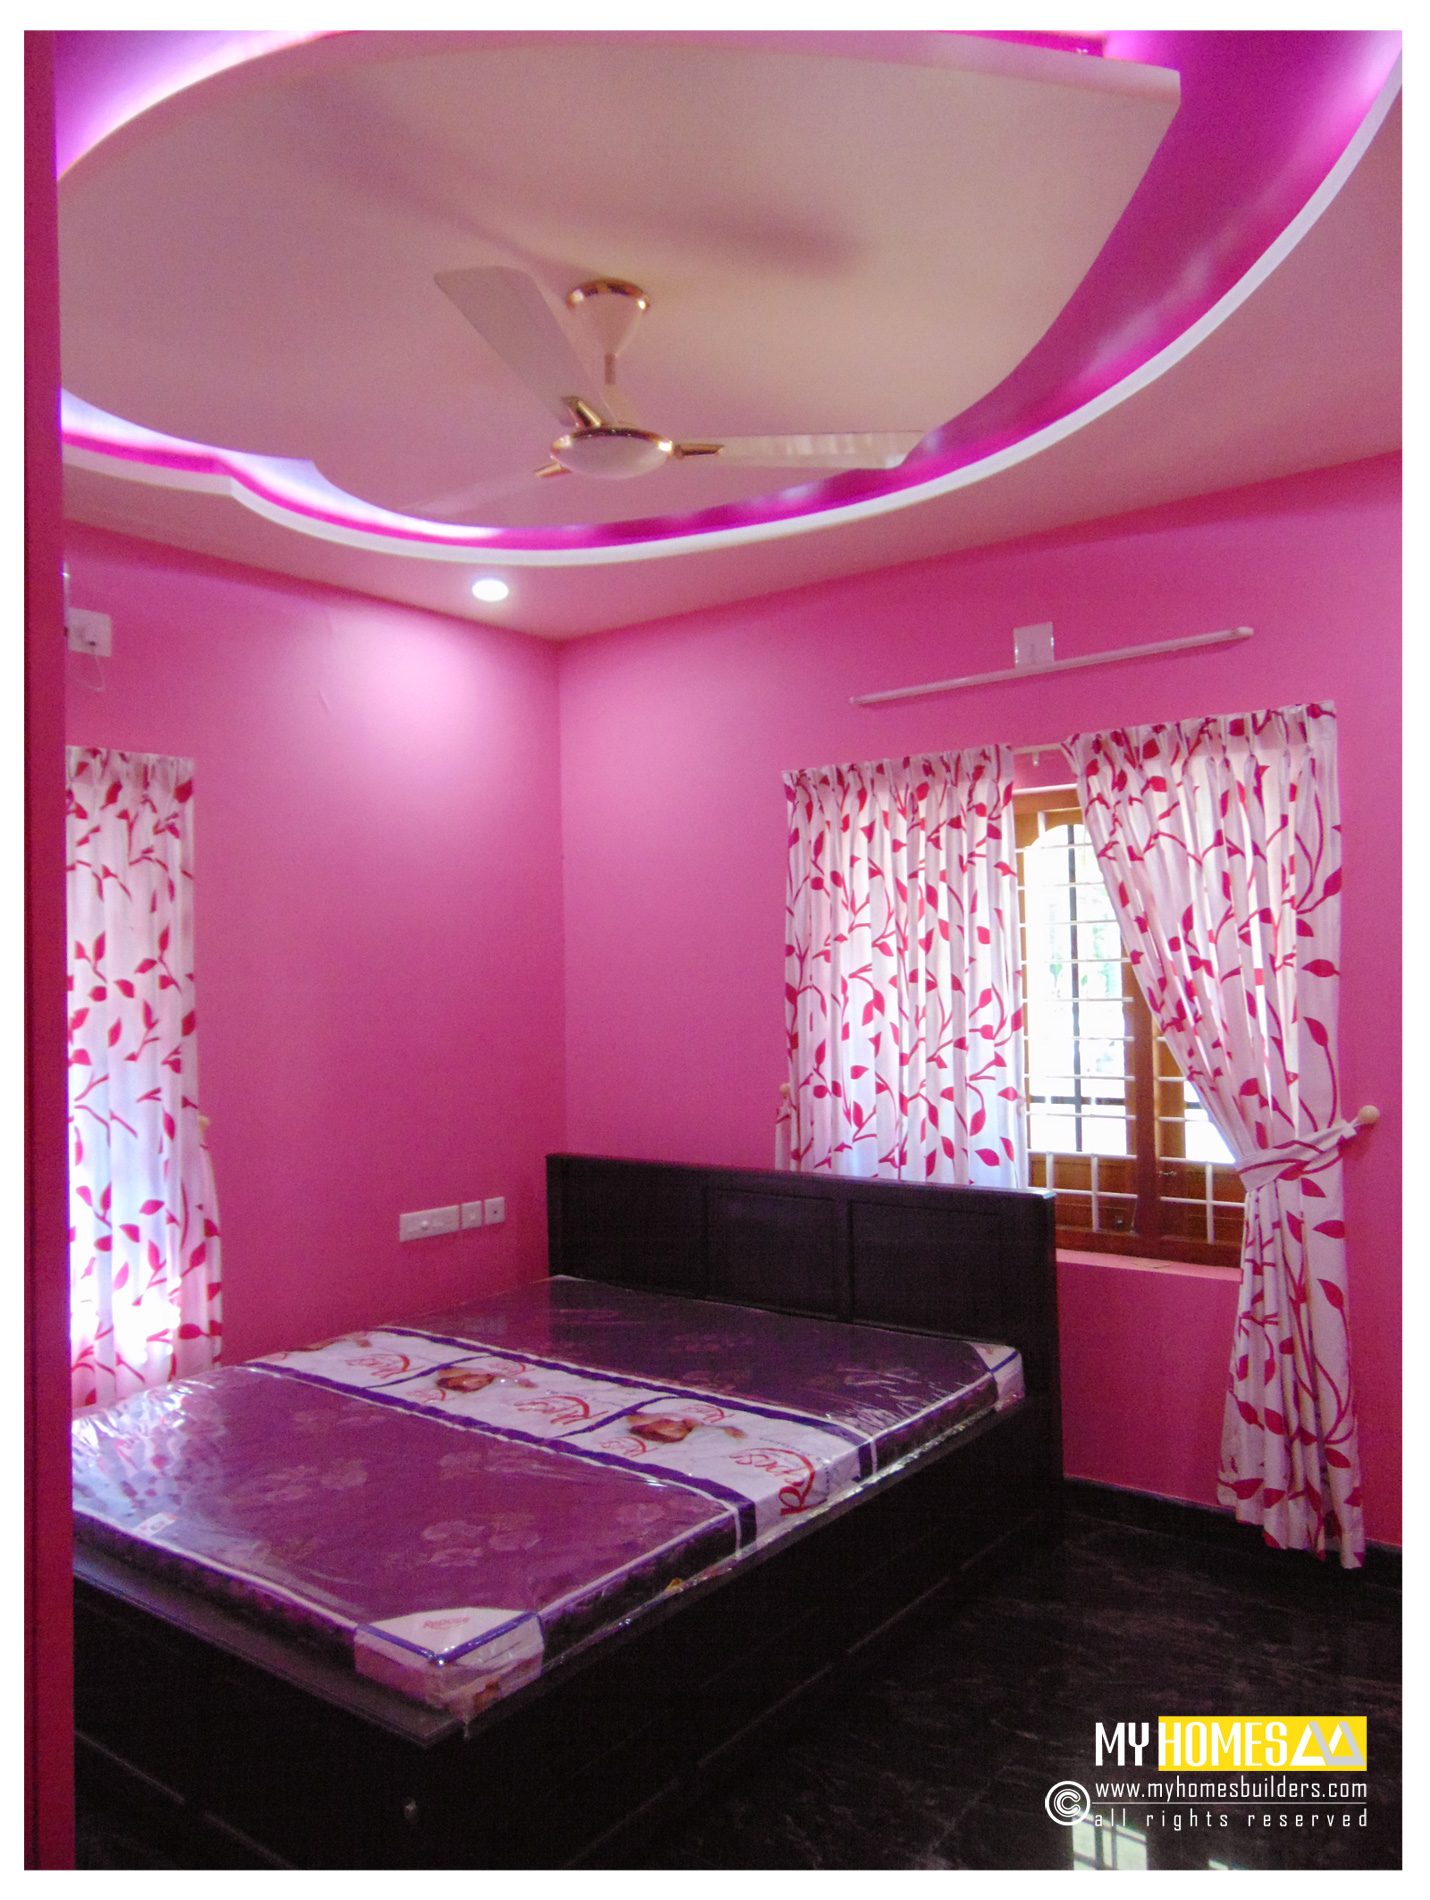 Simple style kerala bedroom designs ideas for home interior - Bedroom style for small space model ...